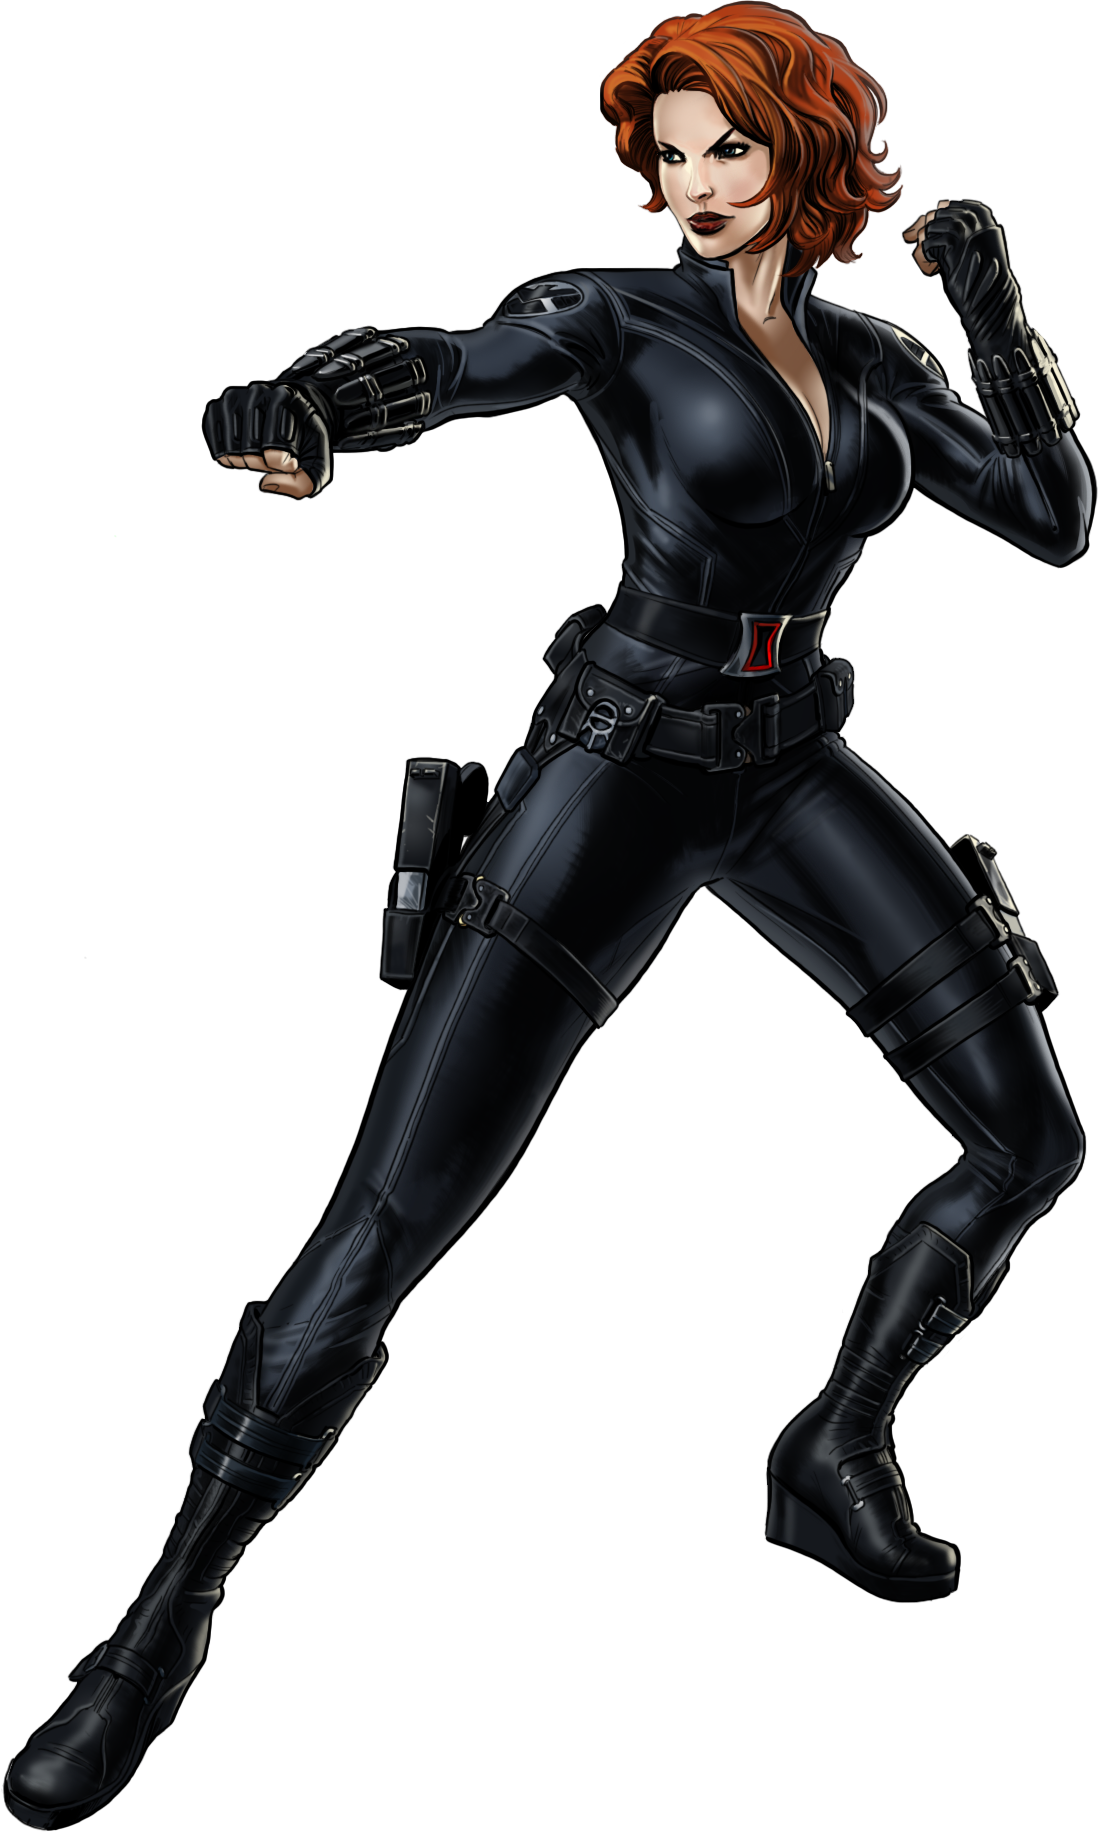 png black and white download Avengers clipart black widow. Image result for blackwidow.